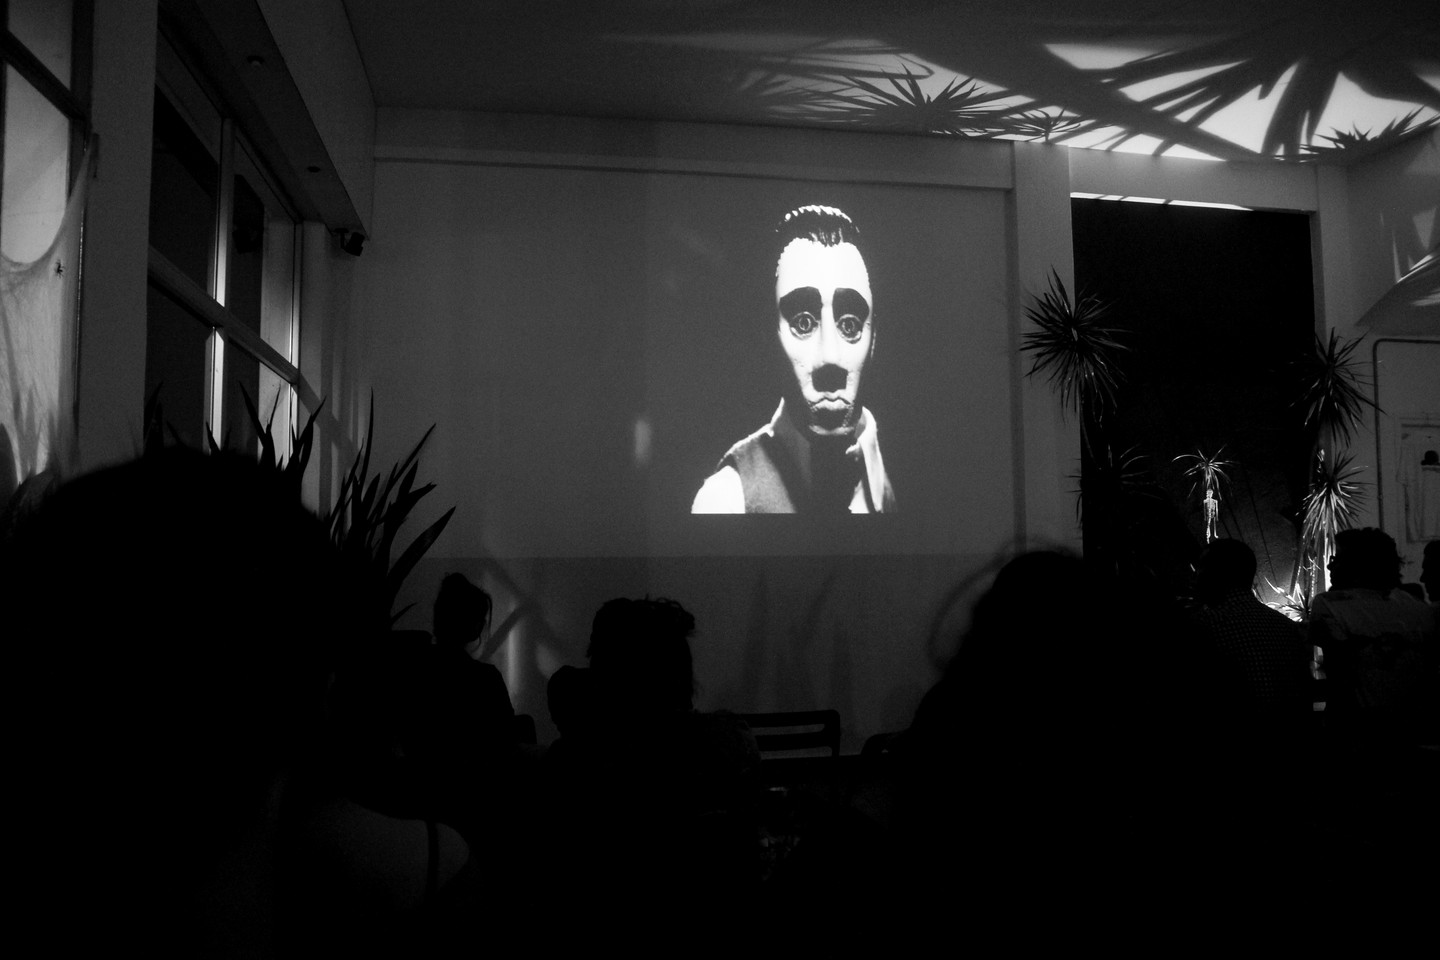 Special Halloween Screening at the Ananas 8bit Coffee, on the 31st of October 2017.